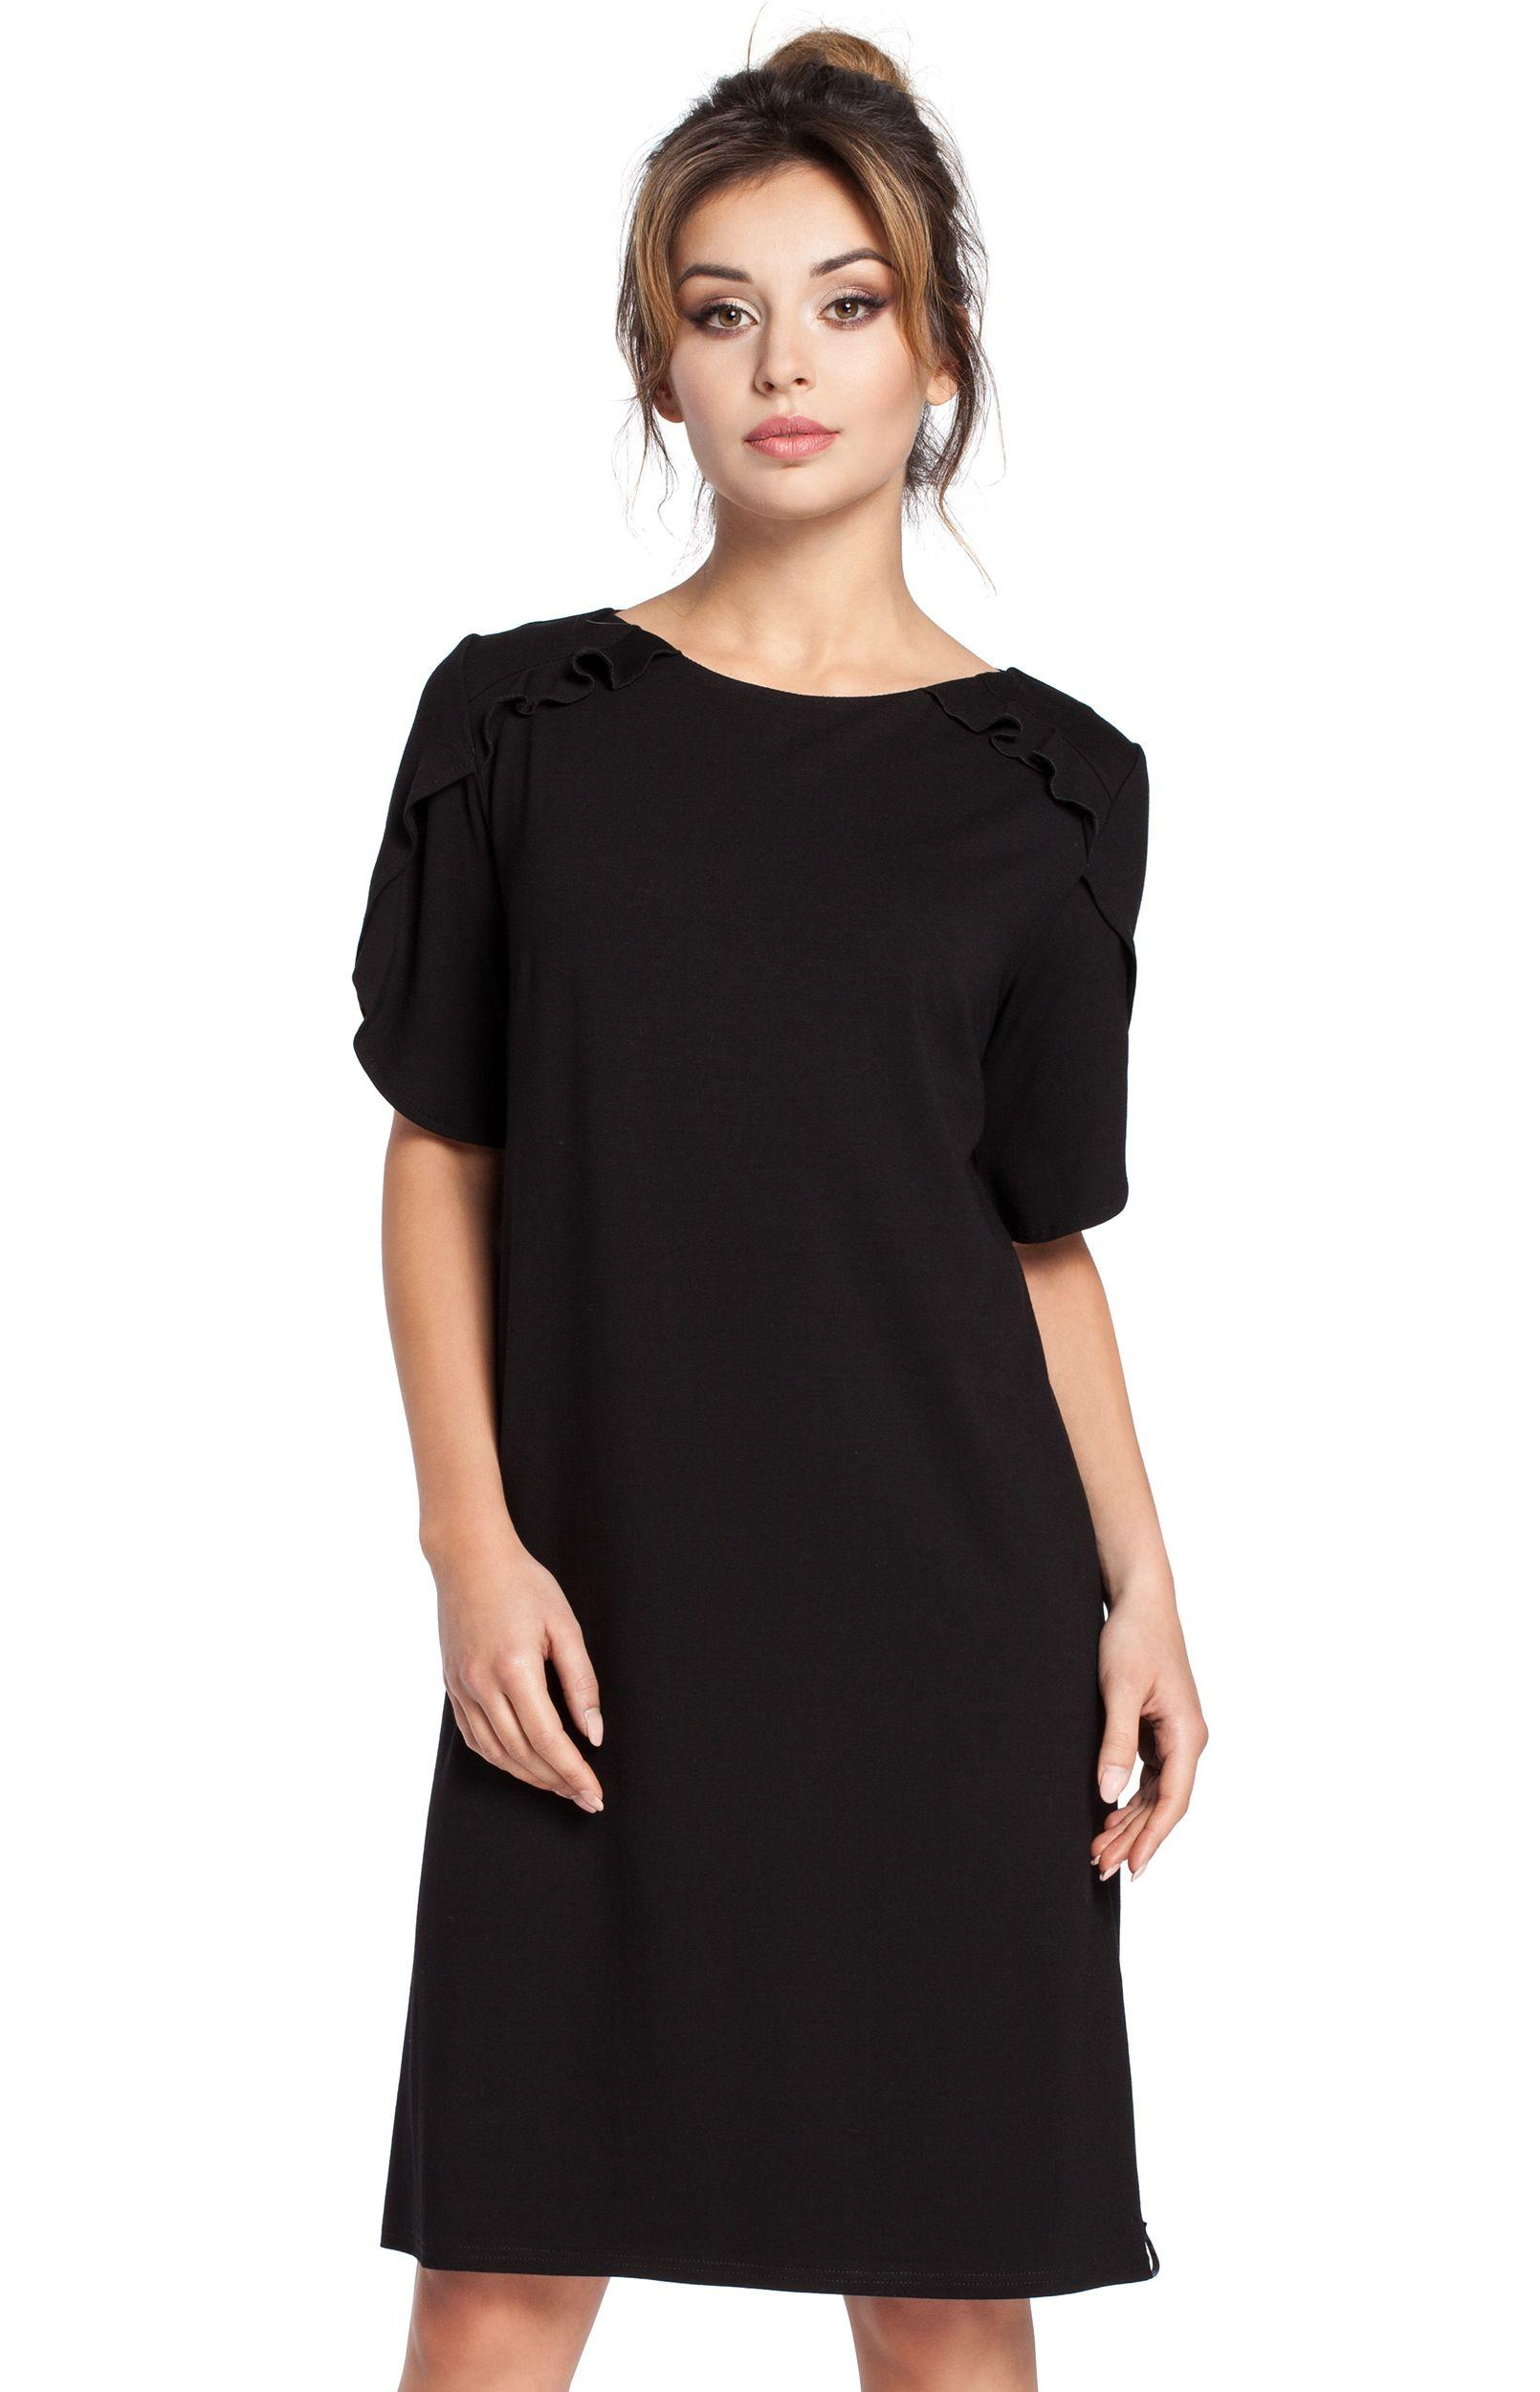 Robe noir simple chic